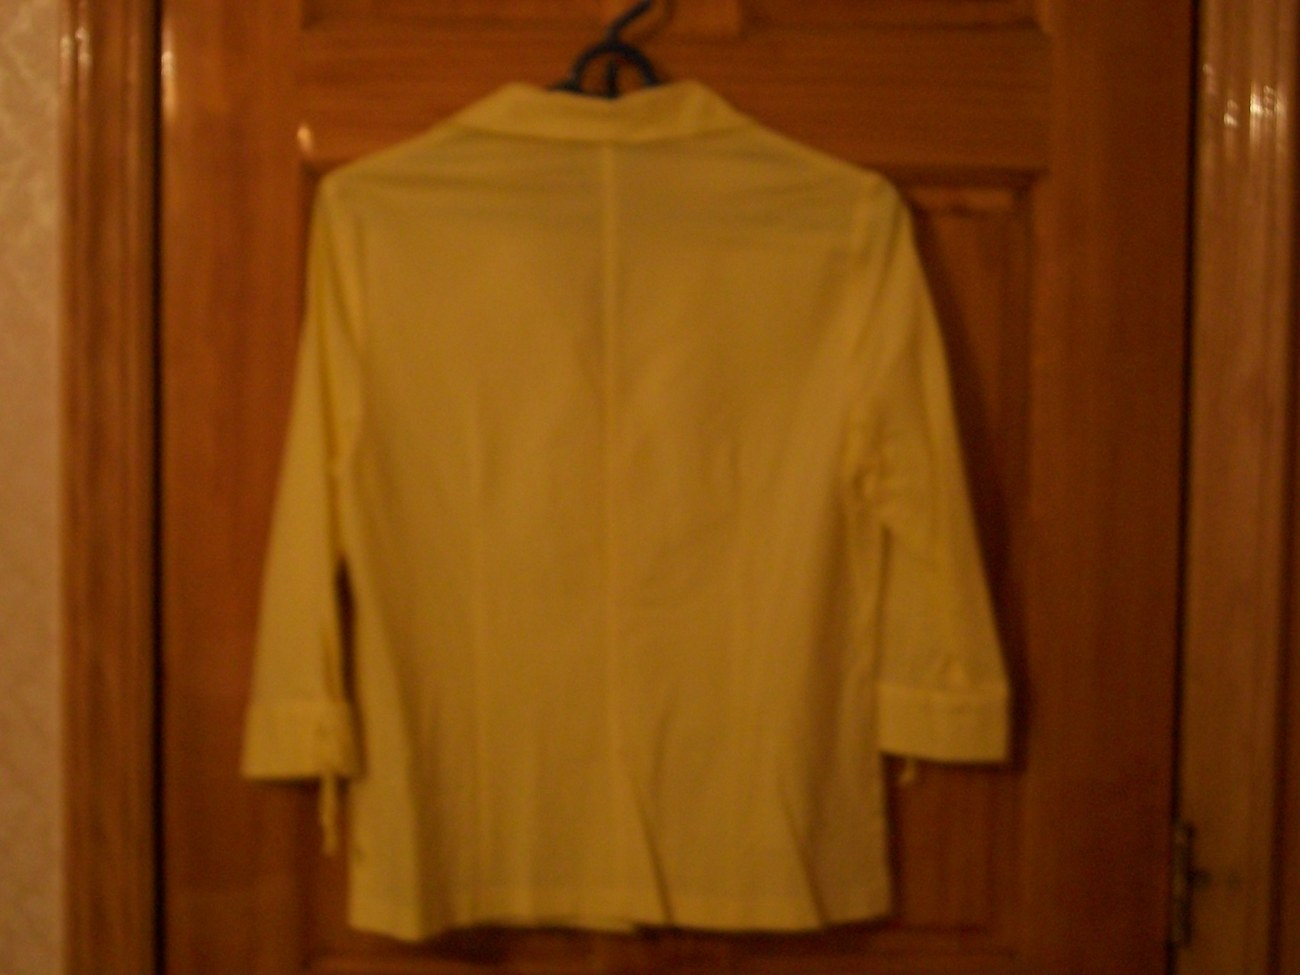 Ice Cube blouse by Michael